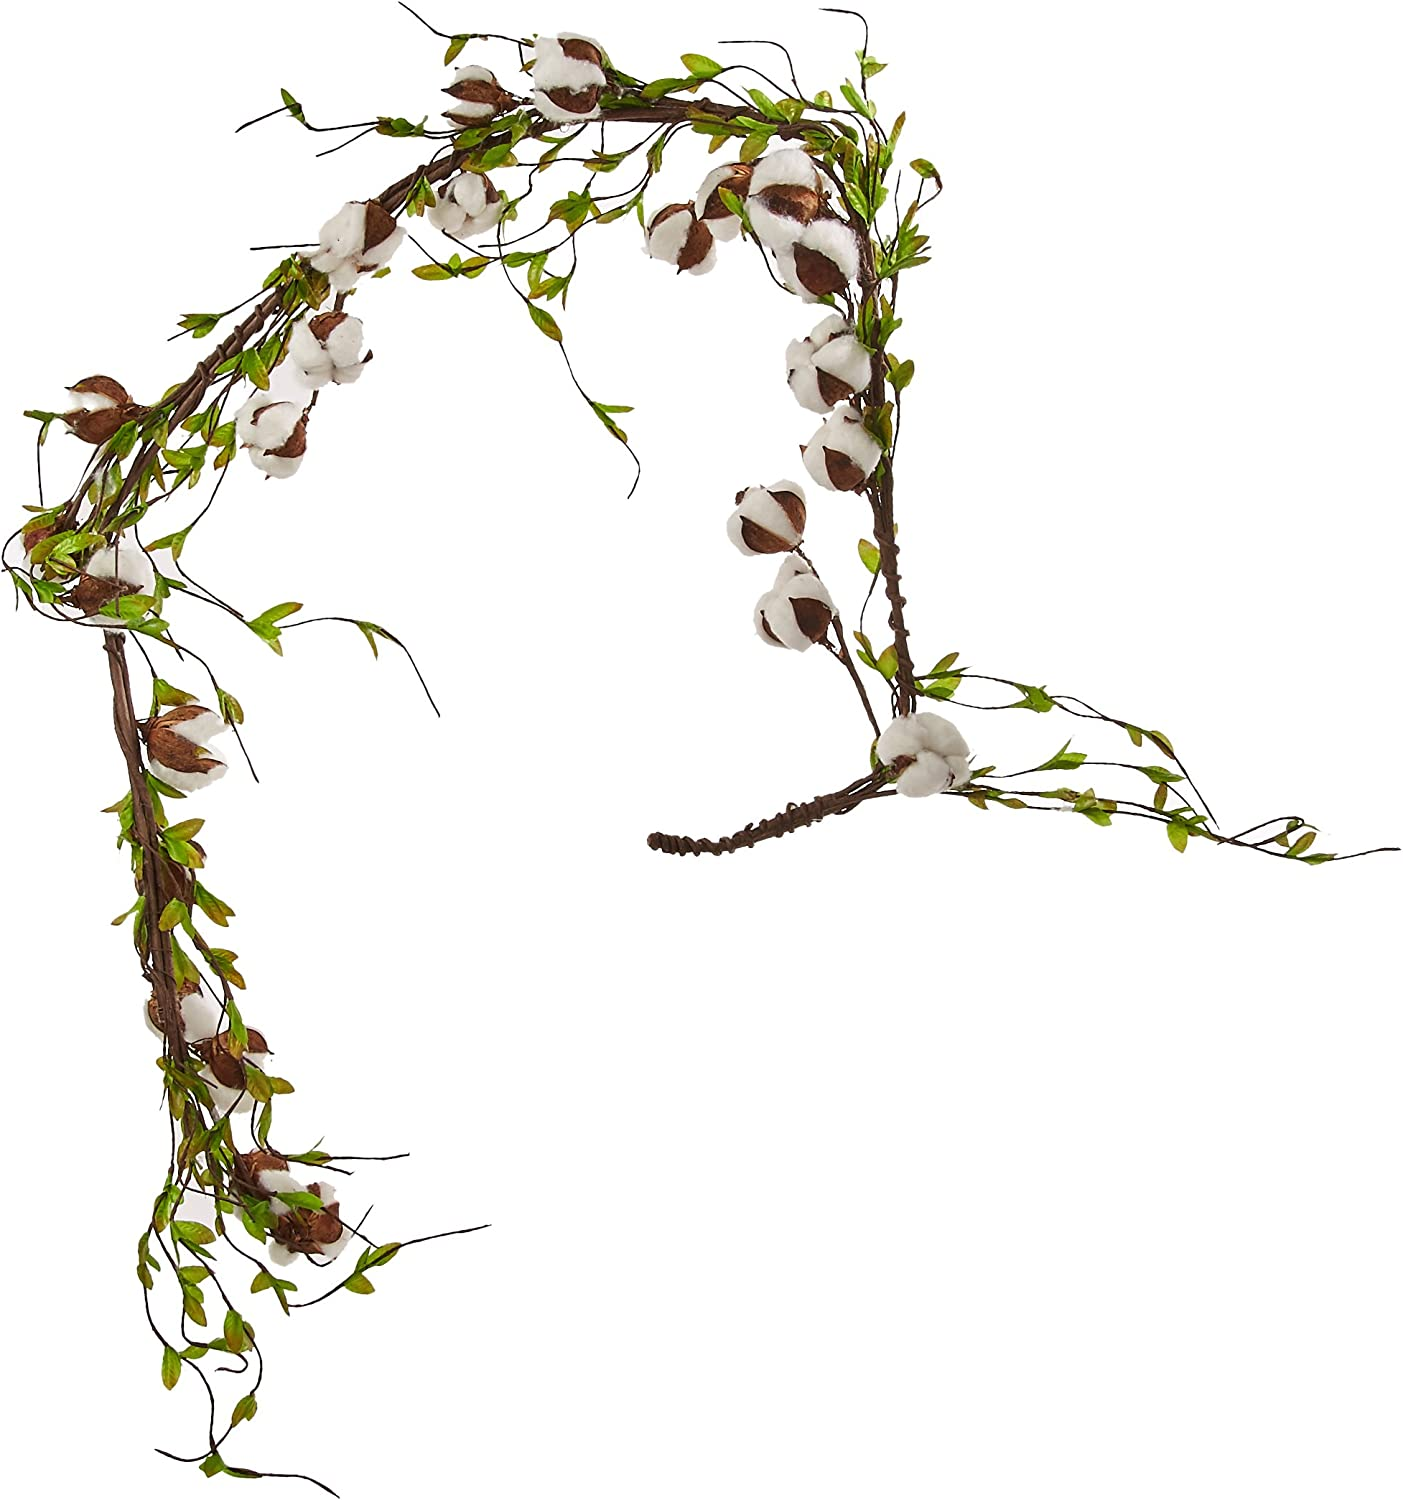 CWI Gifts FISB69031 Superlatite Industry No. 1 Artificial Cotton Garland Leaves M Willow